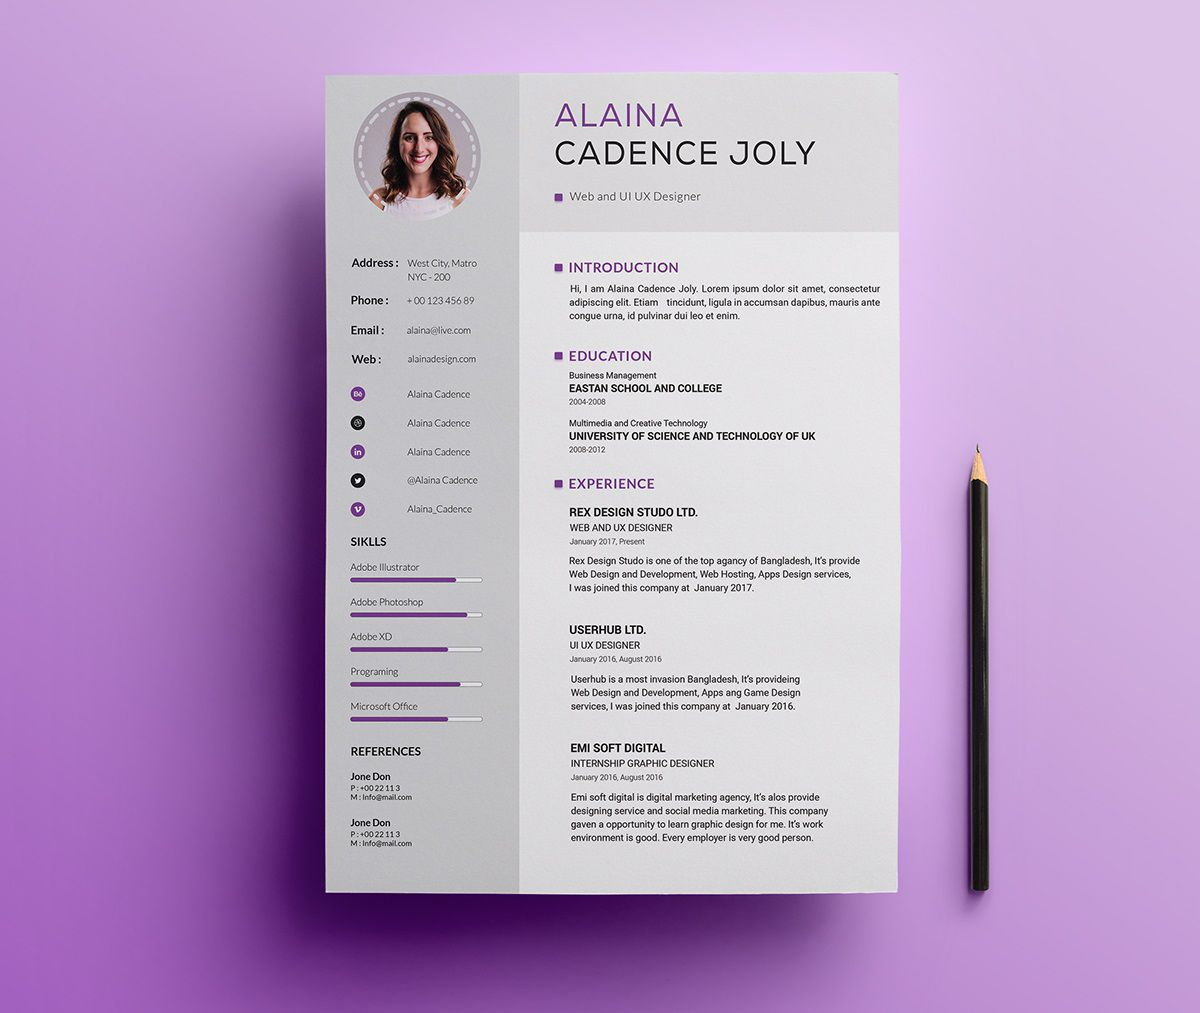 005 Impressive Professional Resume Template 2018 Free Download Idea Full